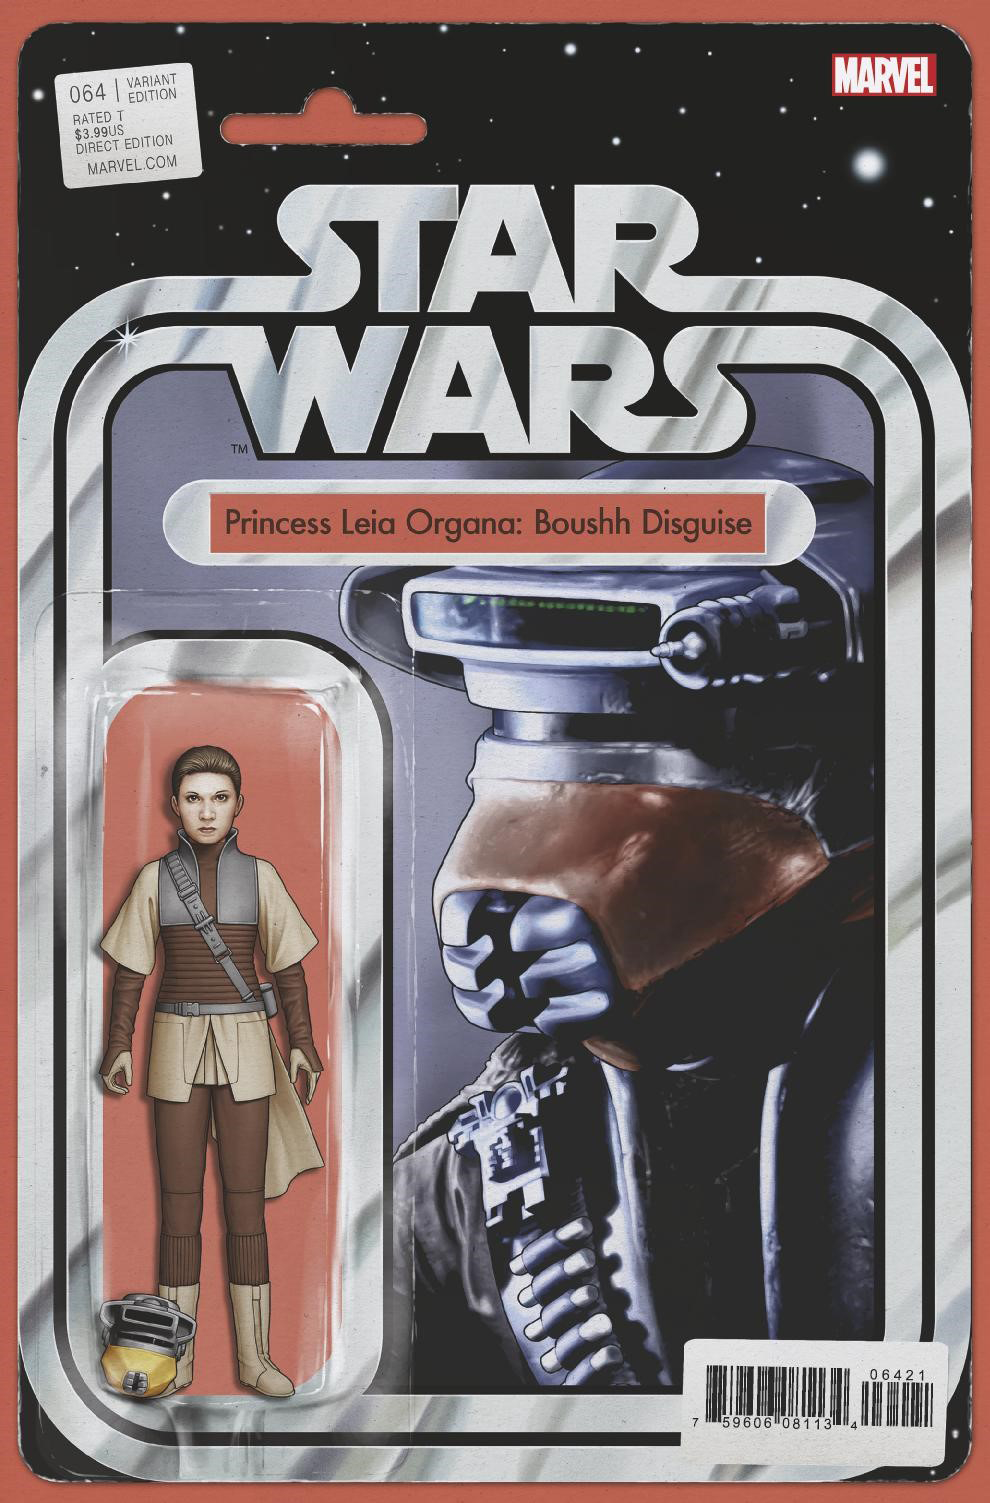 Star Wars #64 (Action Figure Variant Cover) (03.04.2019)